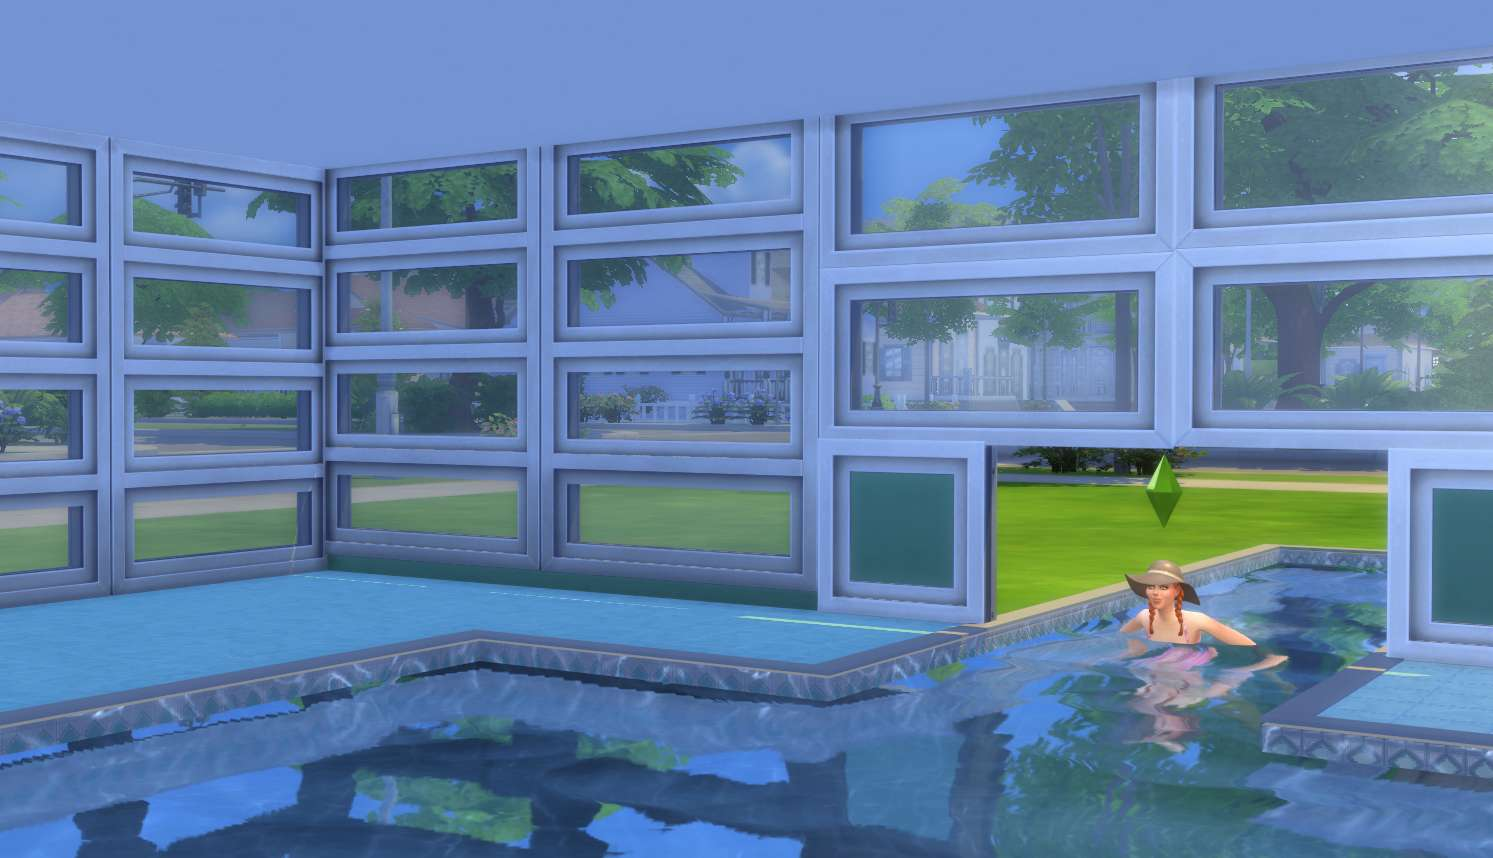 The sims 4 building landscaping pools indoor outdoor for Pool designs sims 4